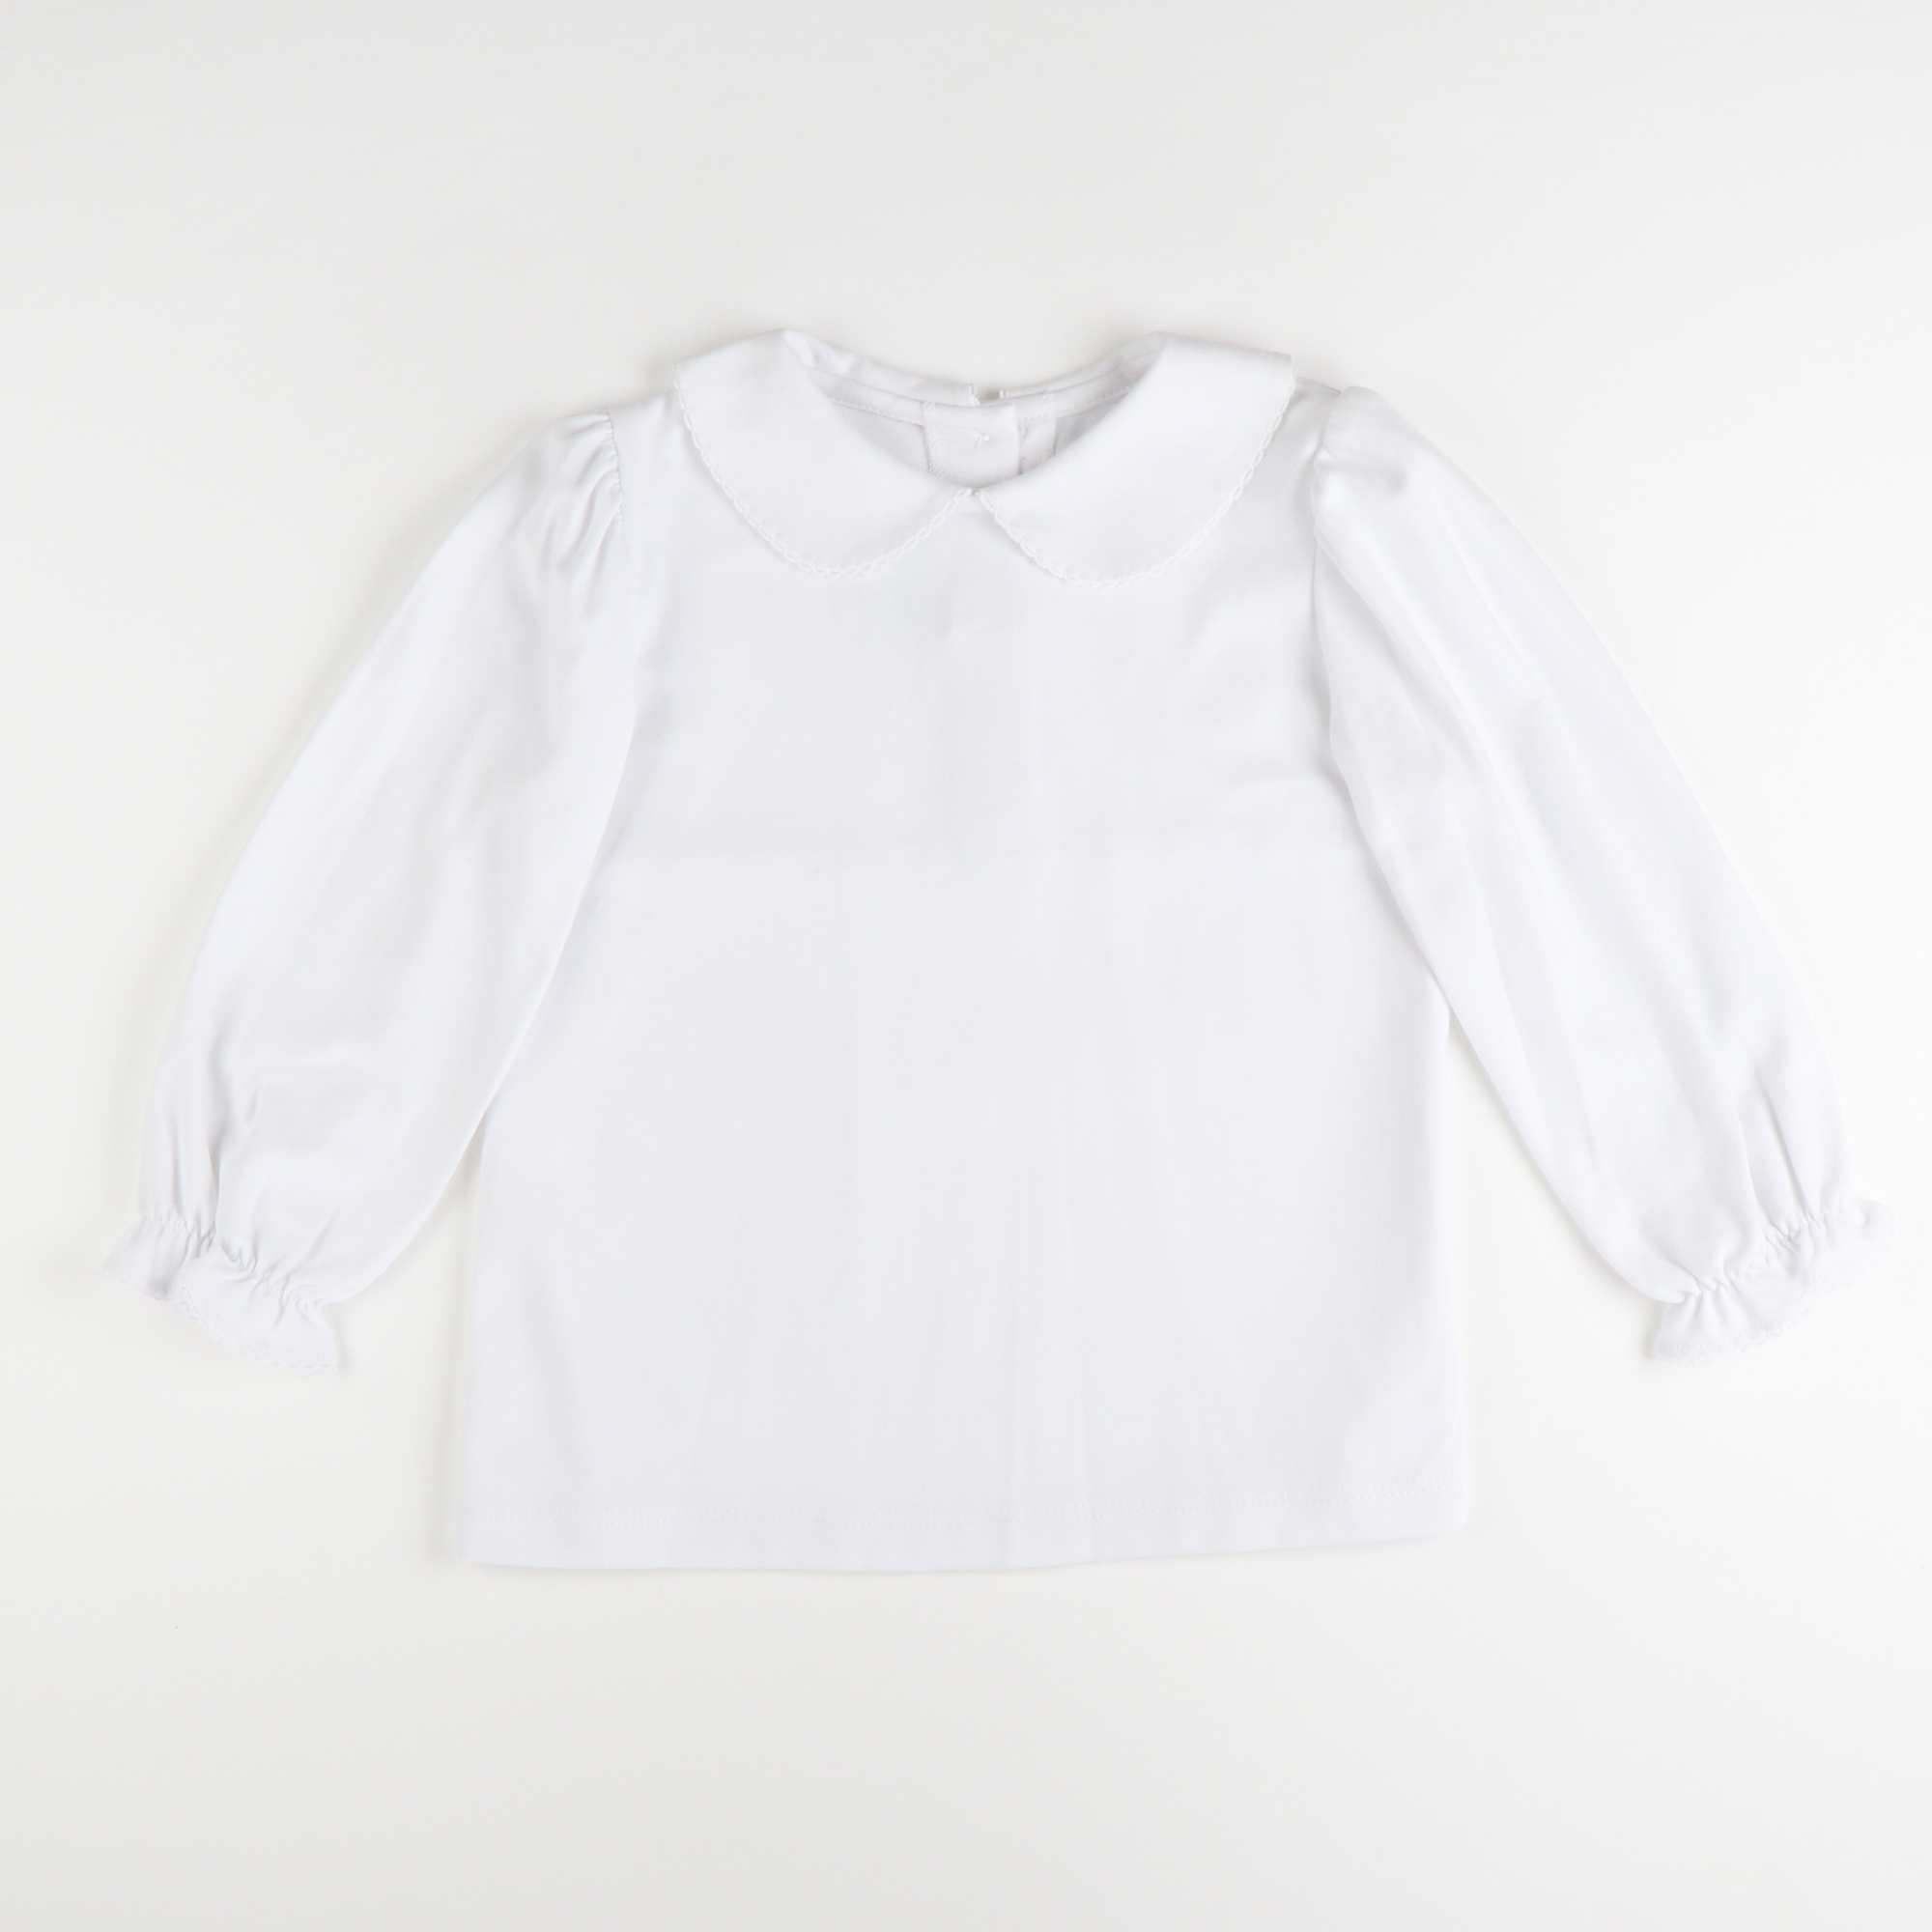 Peter Pan Collared Long Sleeve Blouse w/ Pico Trim - White Knit